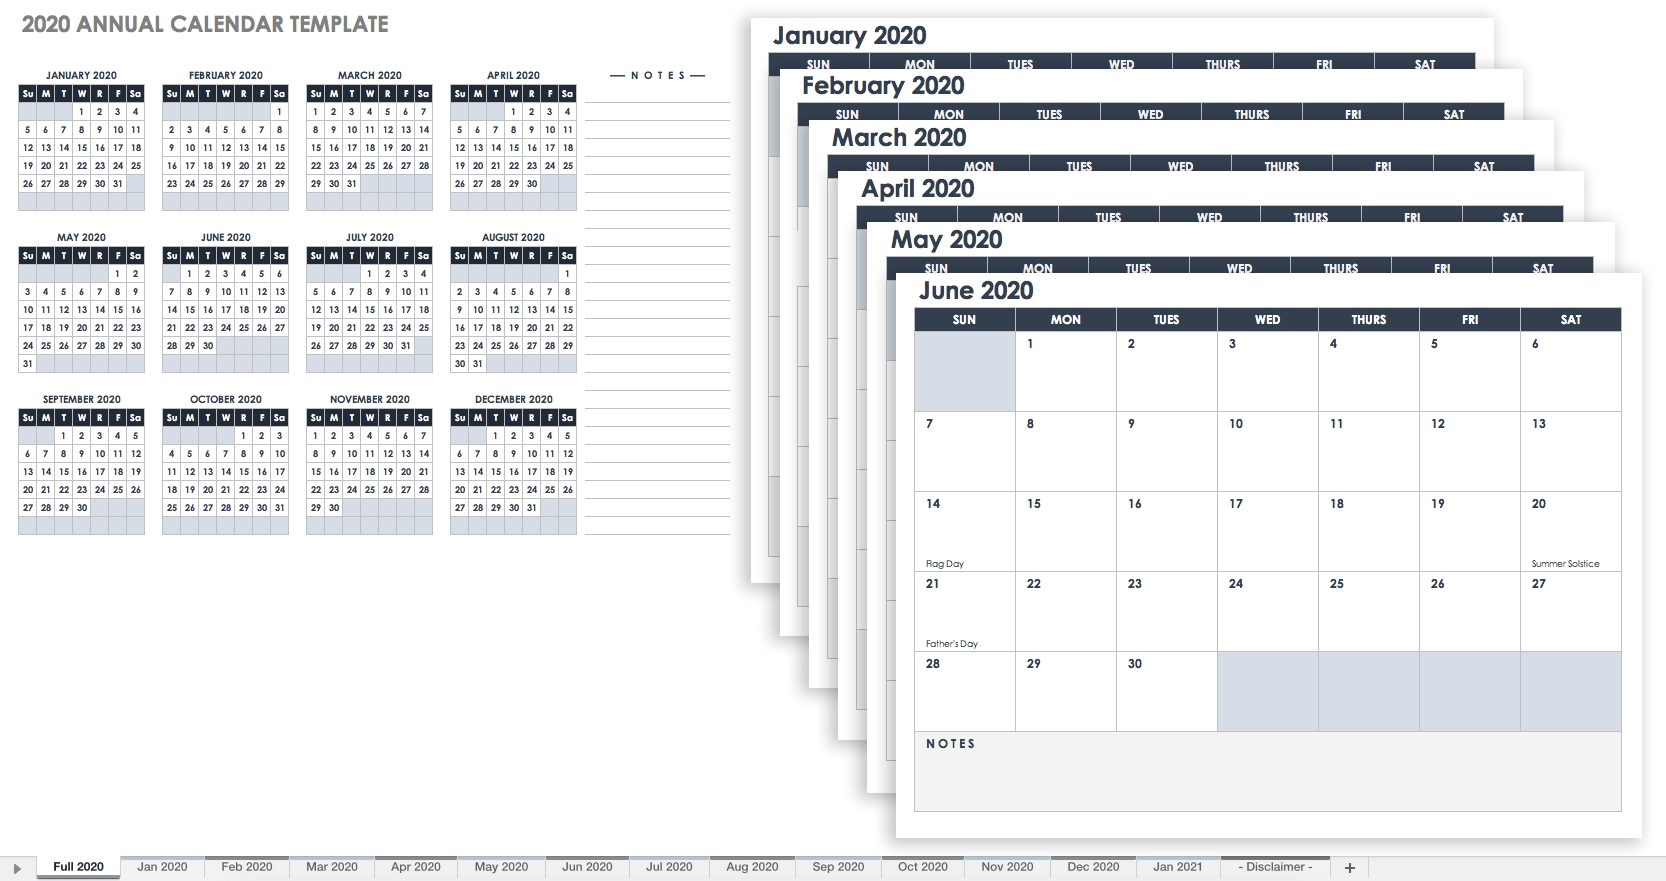 Free Blank Calendar Templates - Smartsheet with regard to Free Printable Calendar With Lines 2019 And 2020